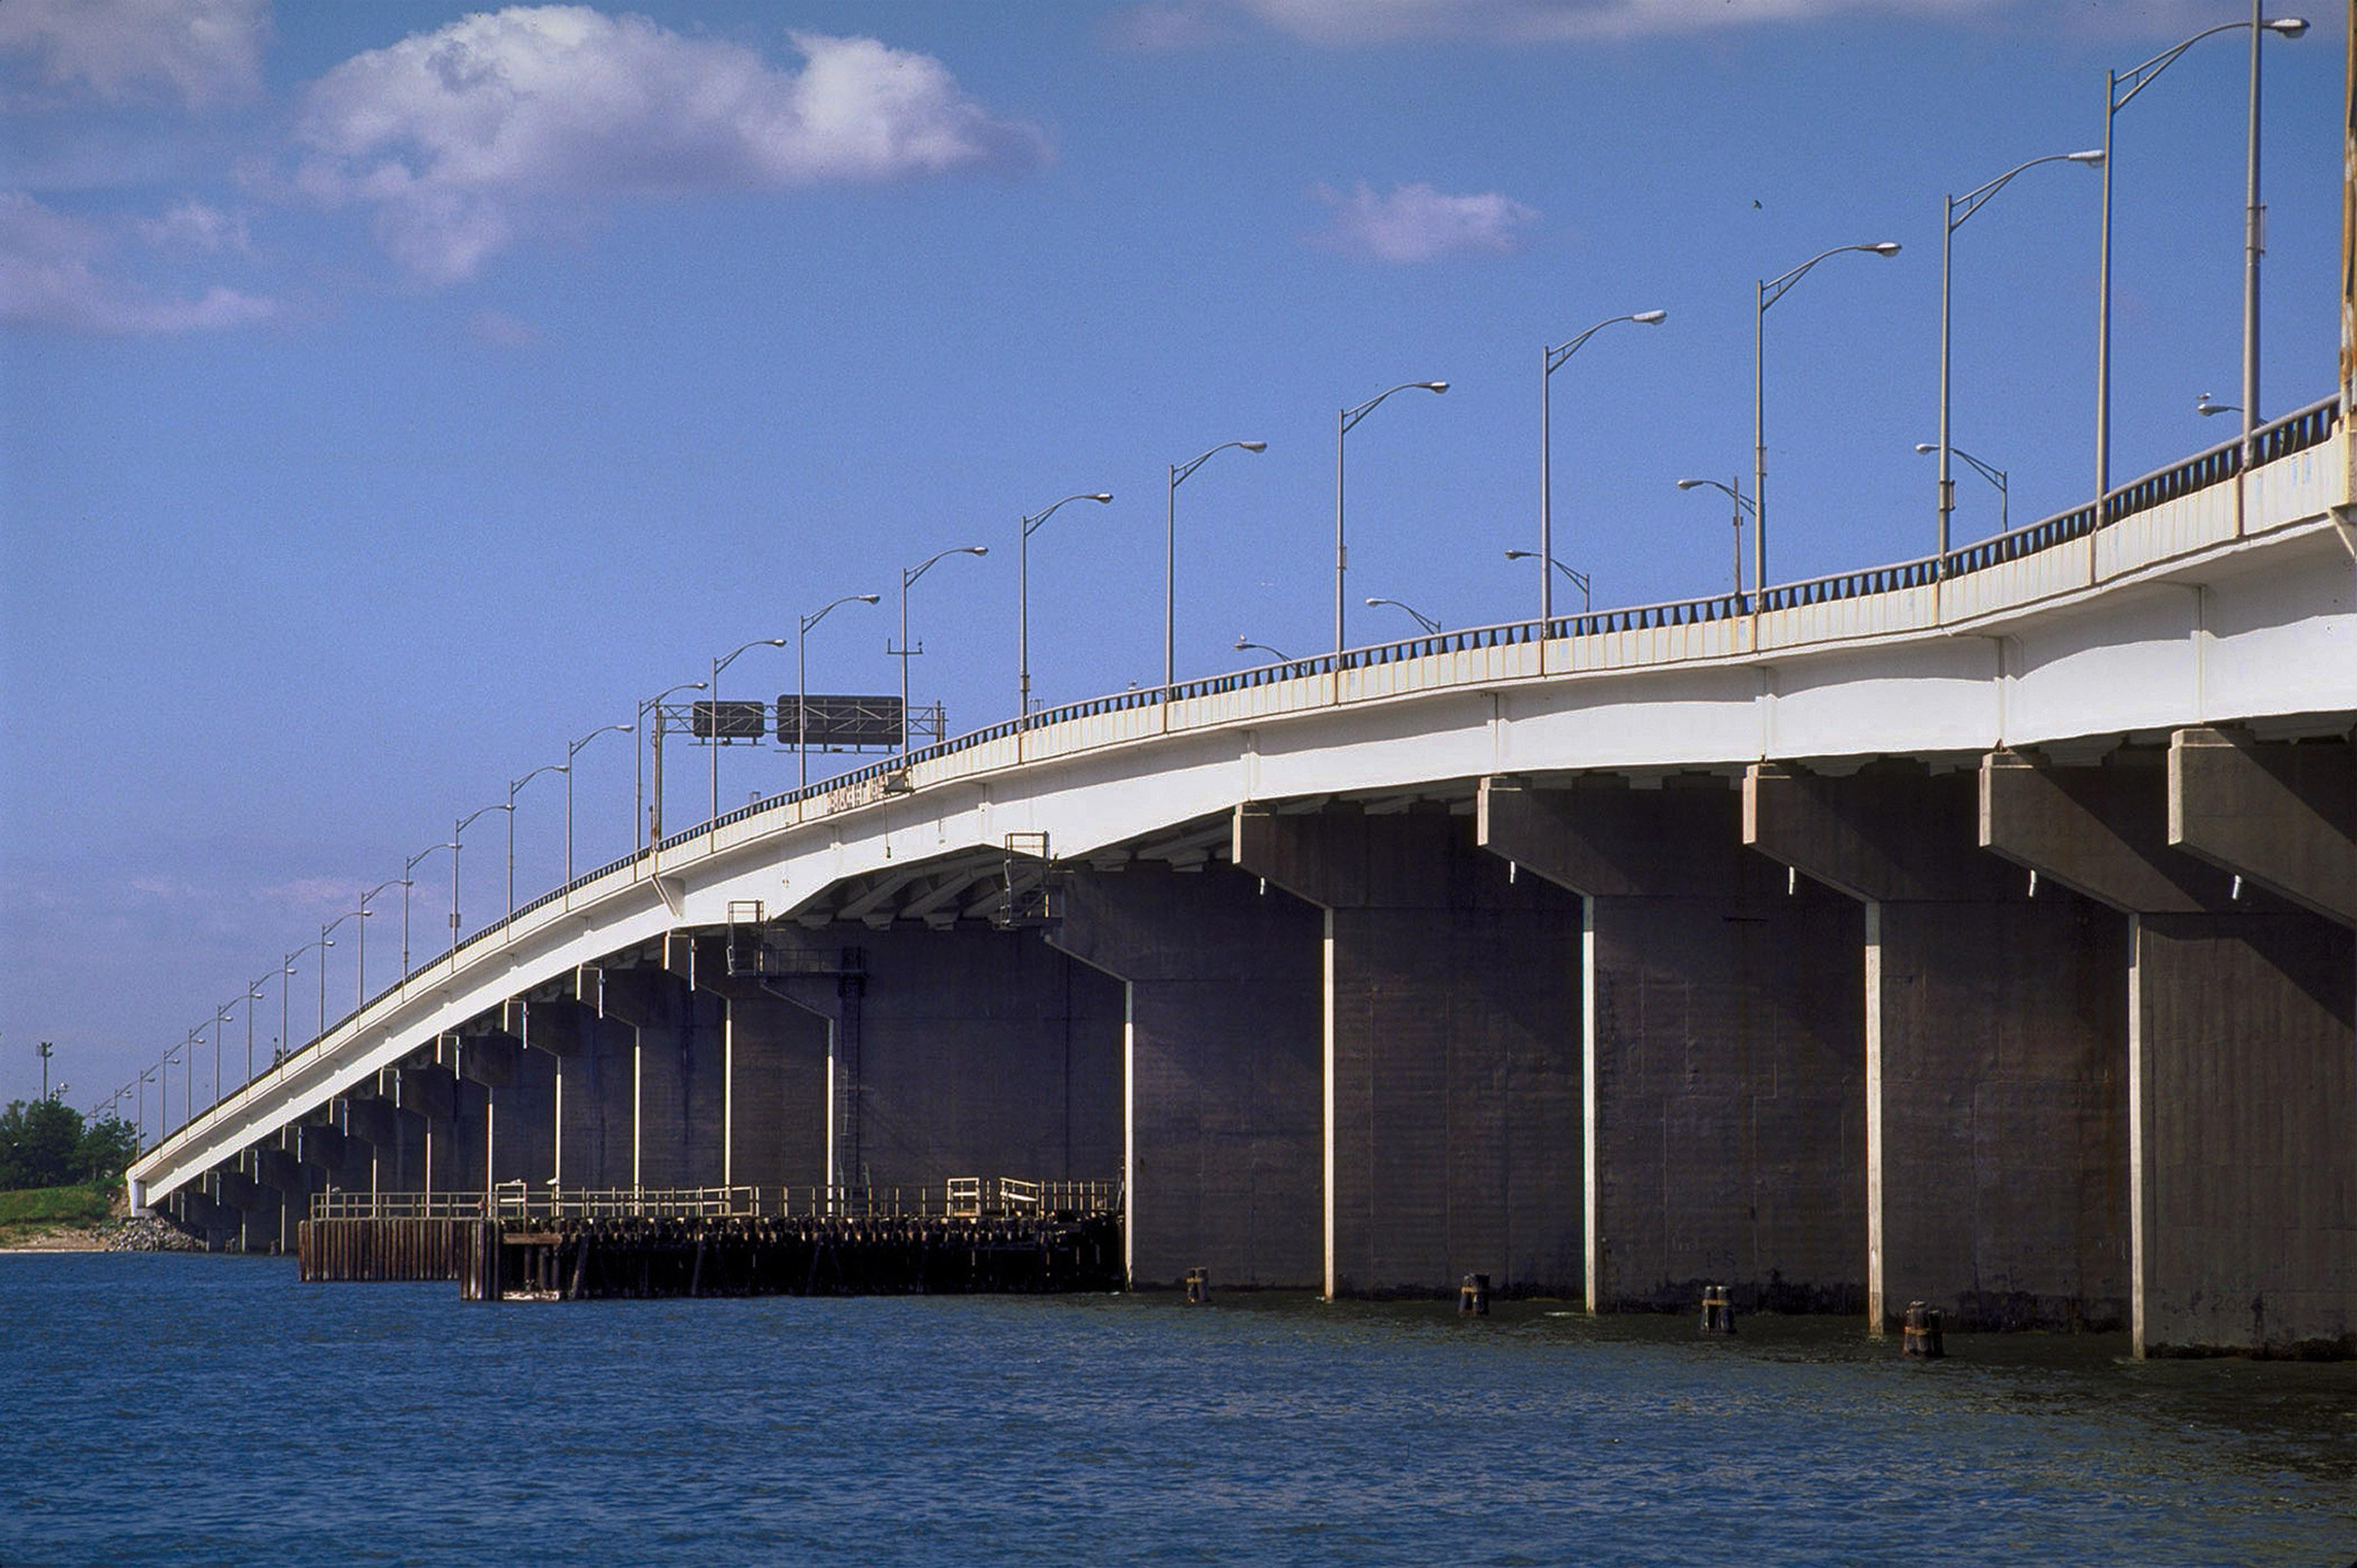 A bridge with traffic signs and streetlights visible stretches across a body of water, with blue sky and clouds overhead.